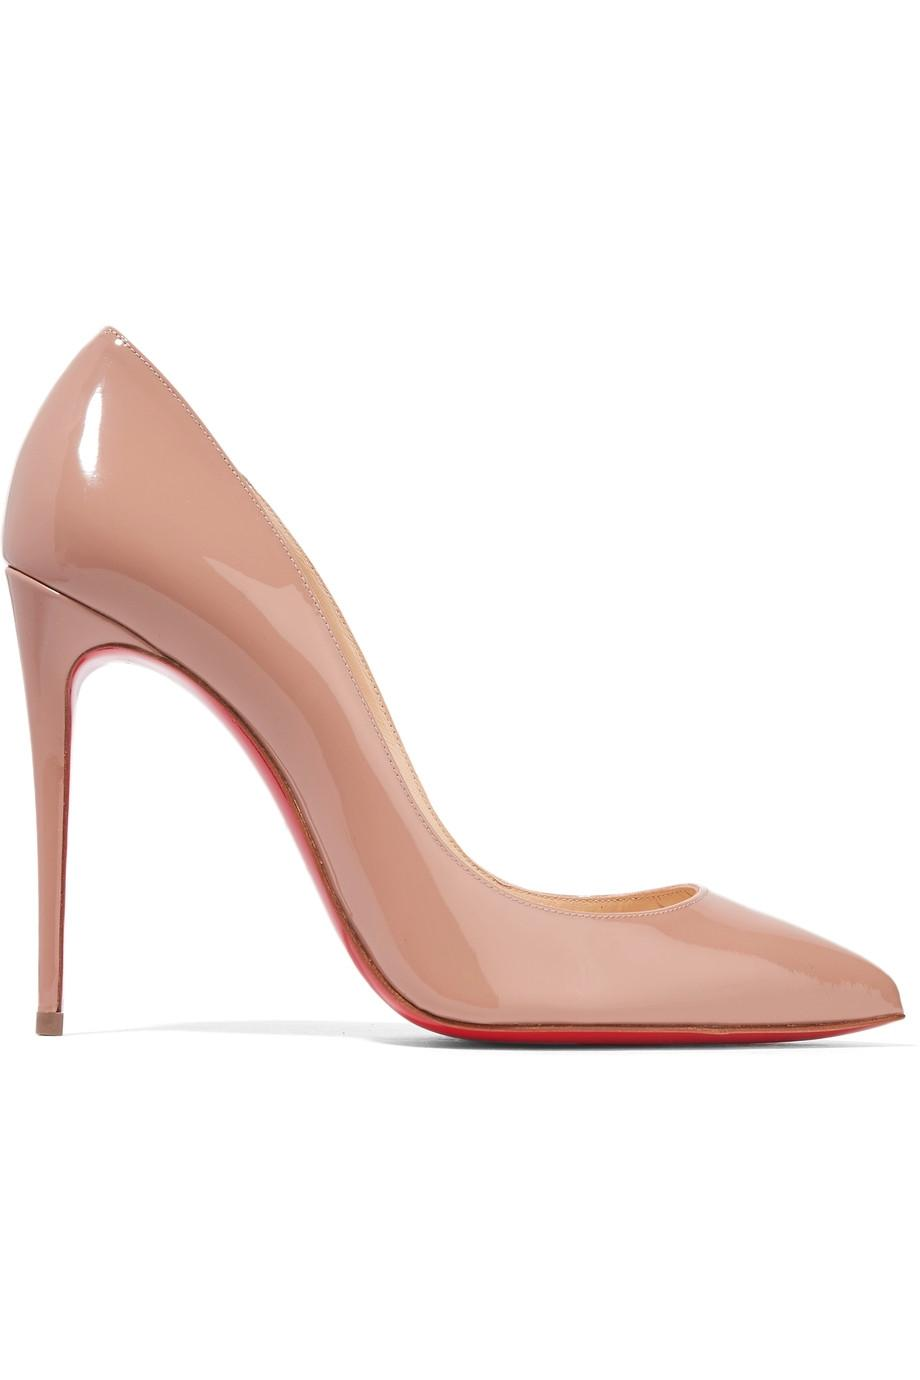 Christian Louboutin Nude Patent - Pigalle Leather 100mm Pumps Size EU 41 (Approx. US 11) Regular (M, B)